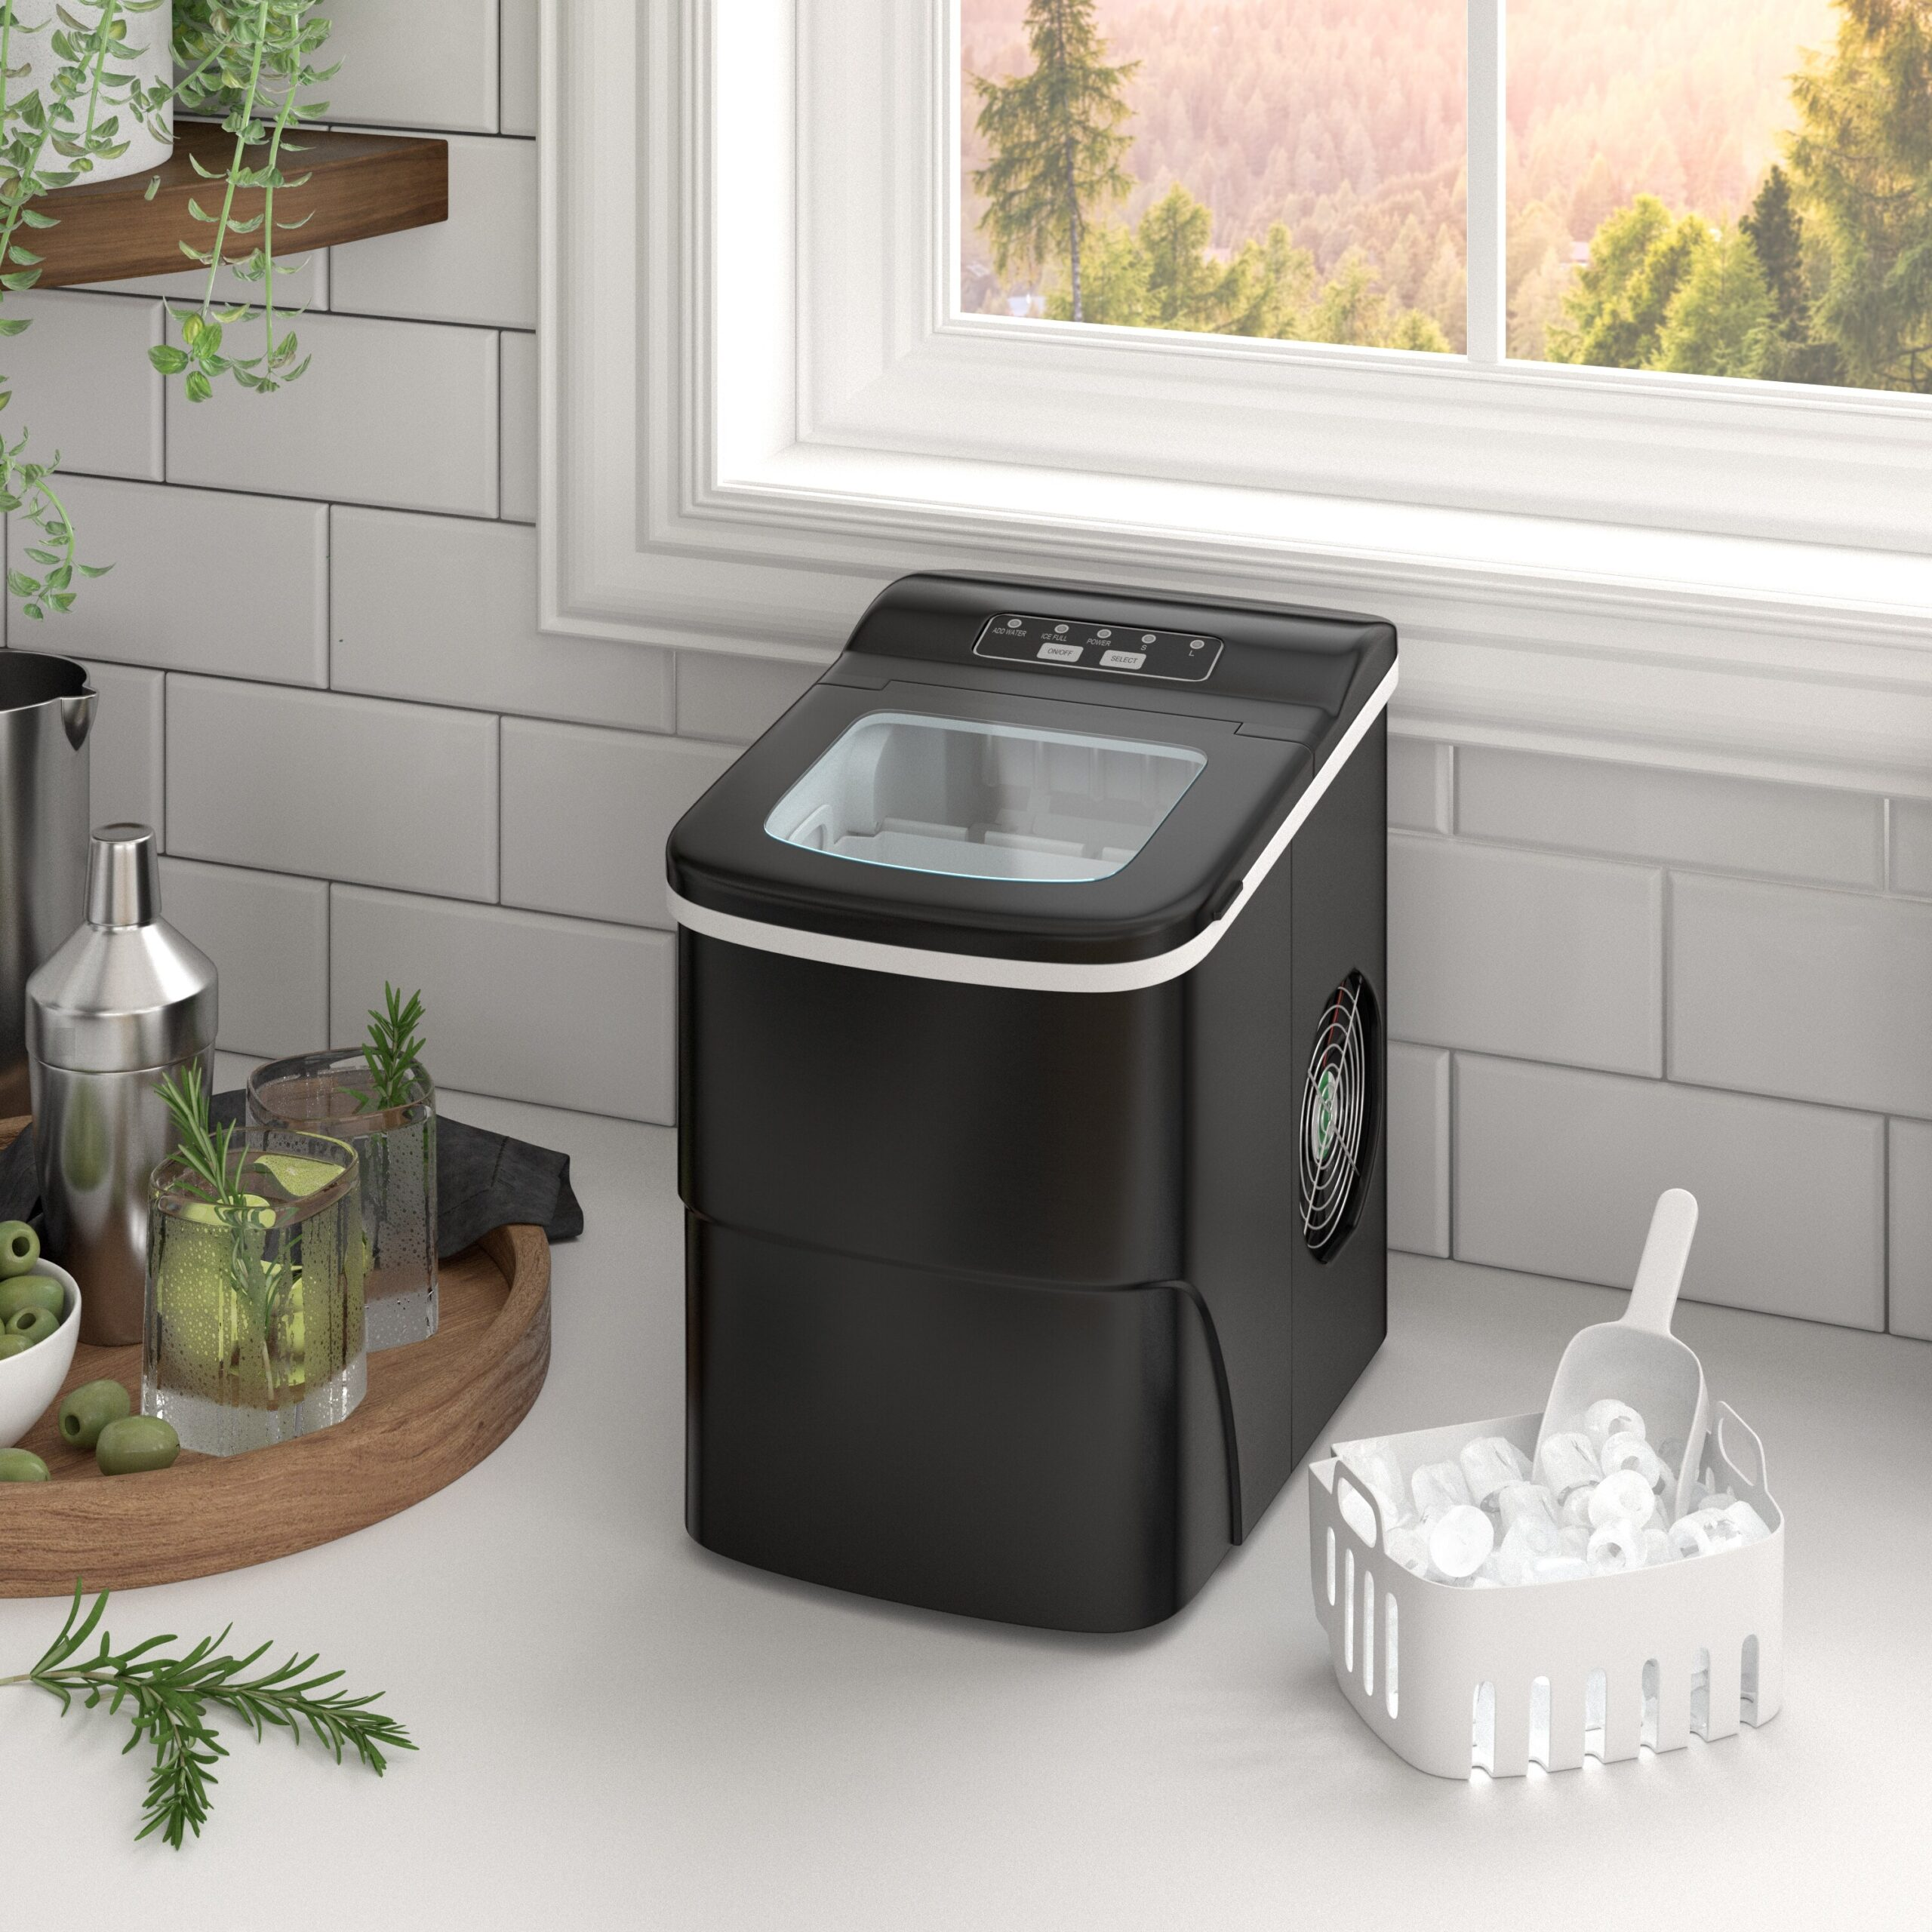 How to Clean a Countertop Ice Maker – a Complete Guide 1